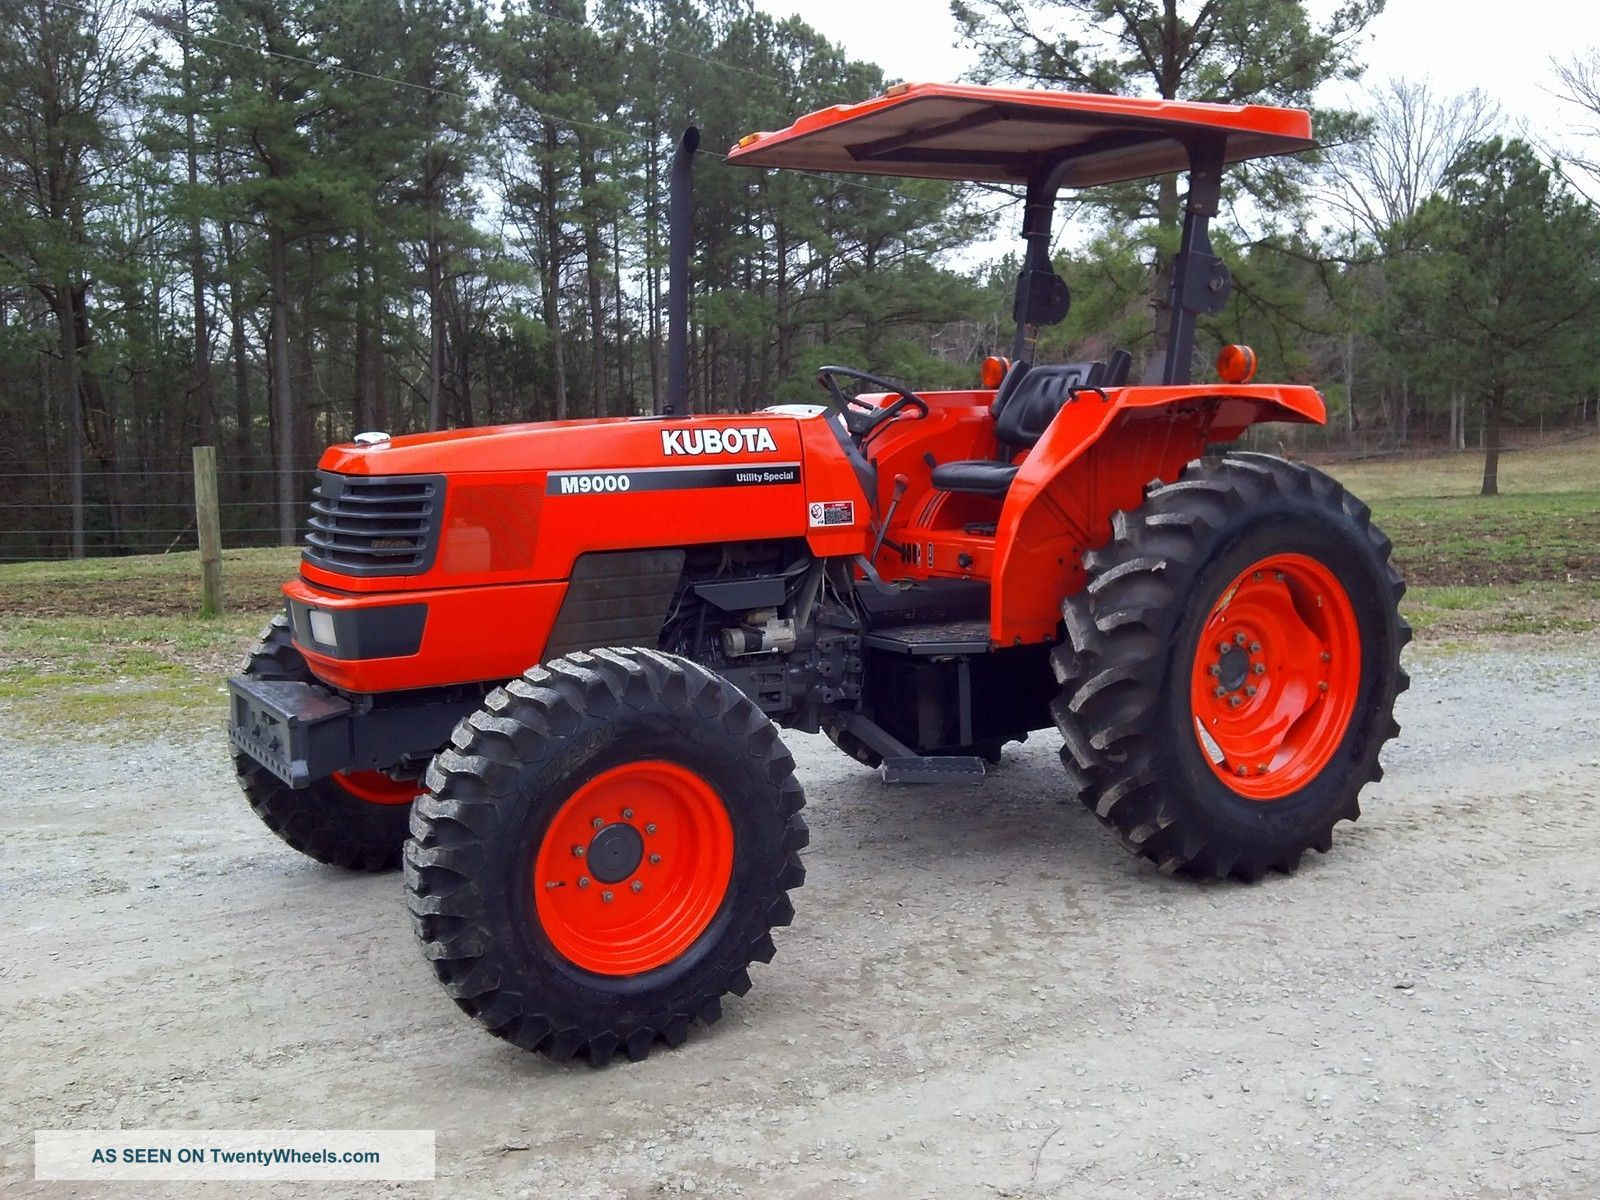 Kubota M9000 - Google Search | Tractors made in Japan